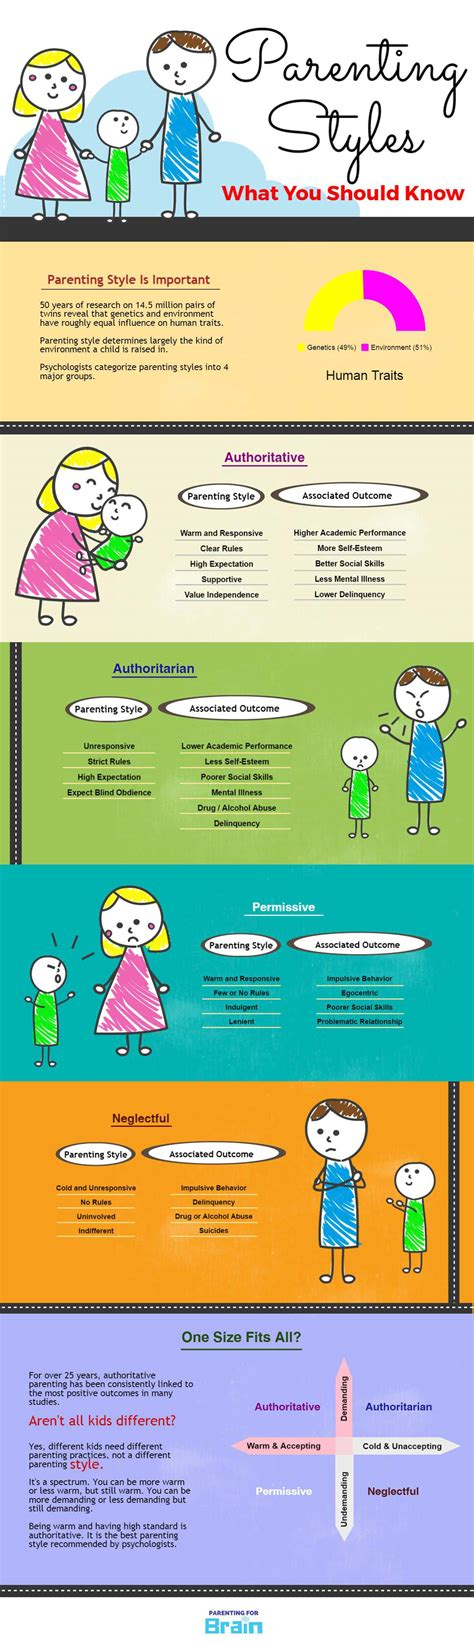 Tough Parenting Essay by Essay On Parenting Styles Parenting Style And Health Status Authoritative Parenting Style